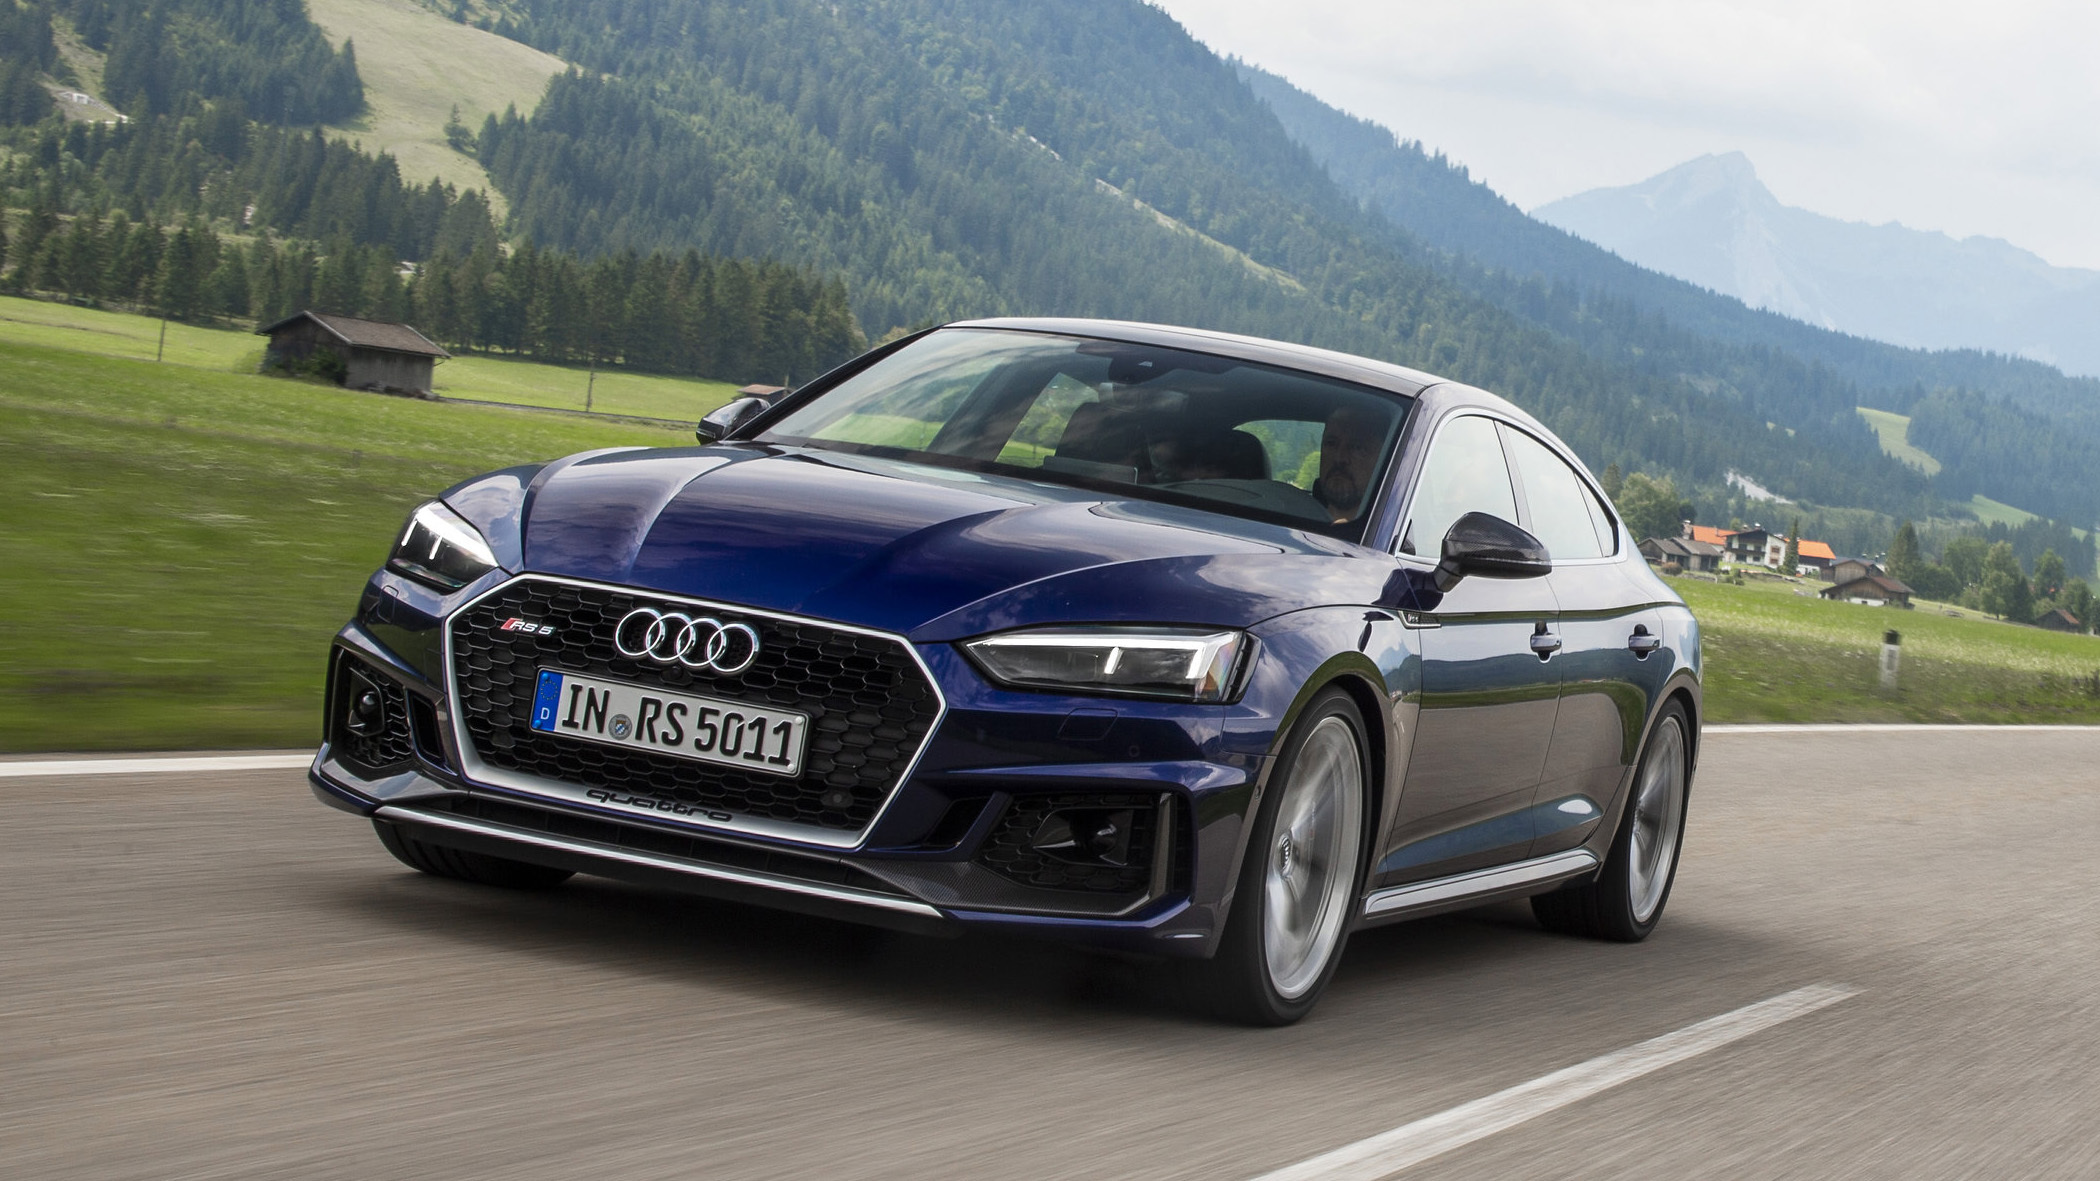 2019 Audi Rs 5 Sportback Street And Track Drive Review Autoblog